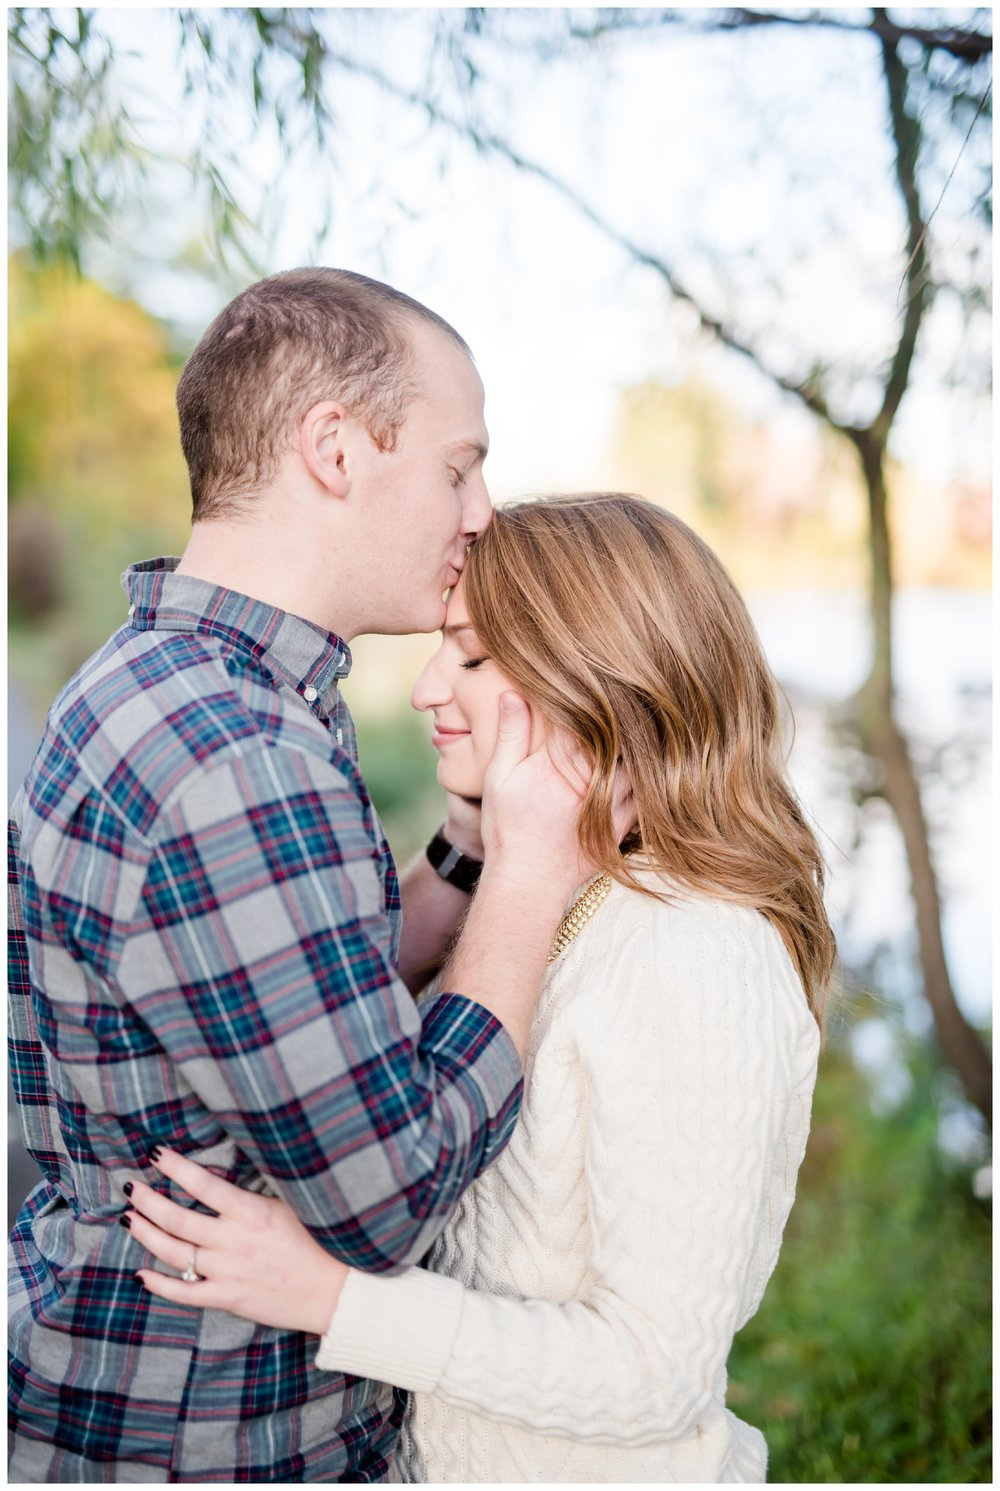 Sweet kisses at engagement session at Verona Park, Verona New Jersey